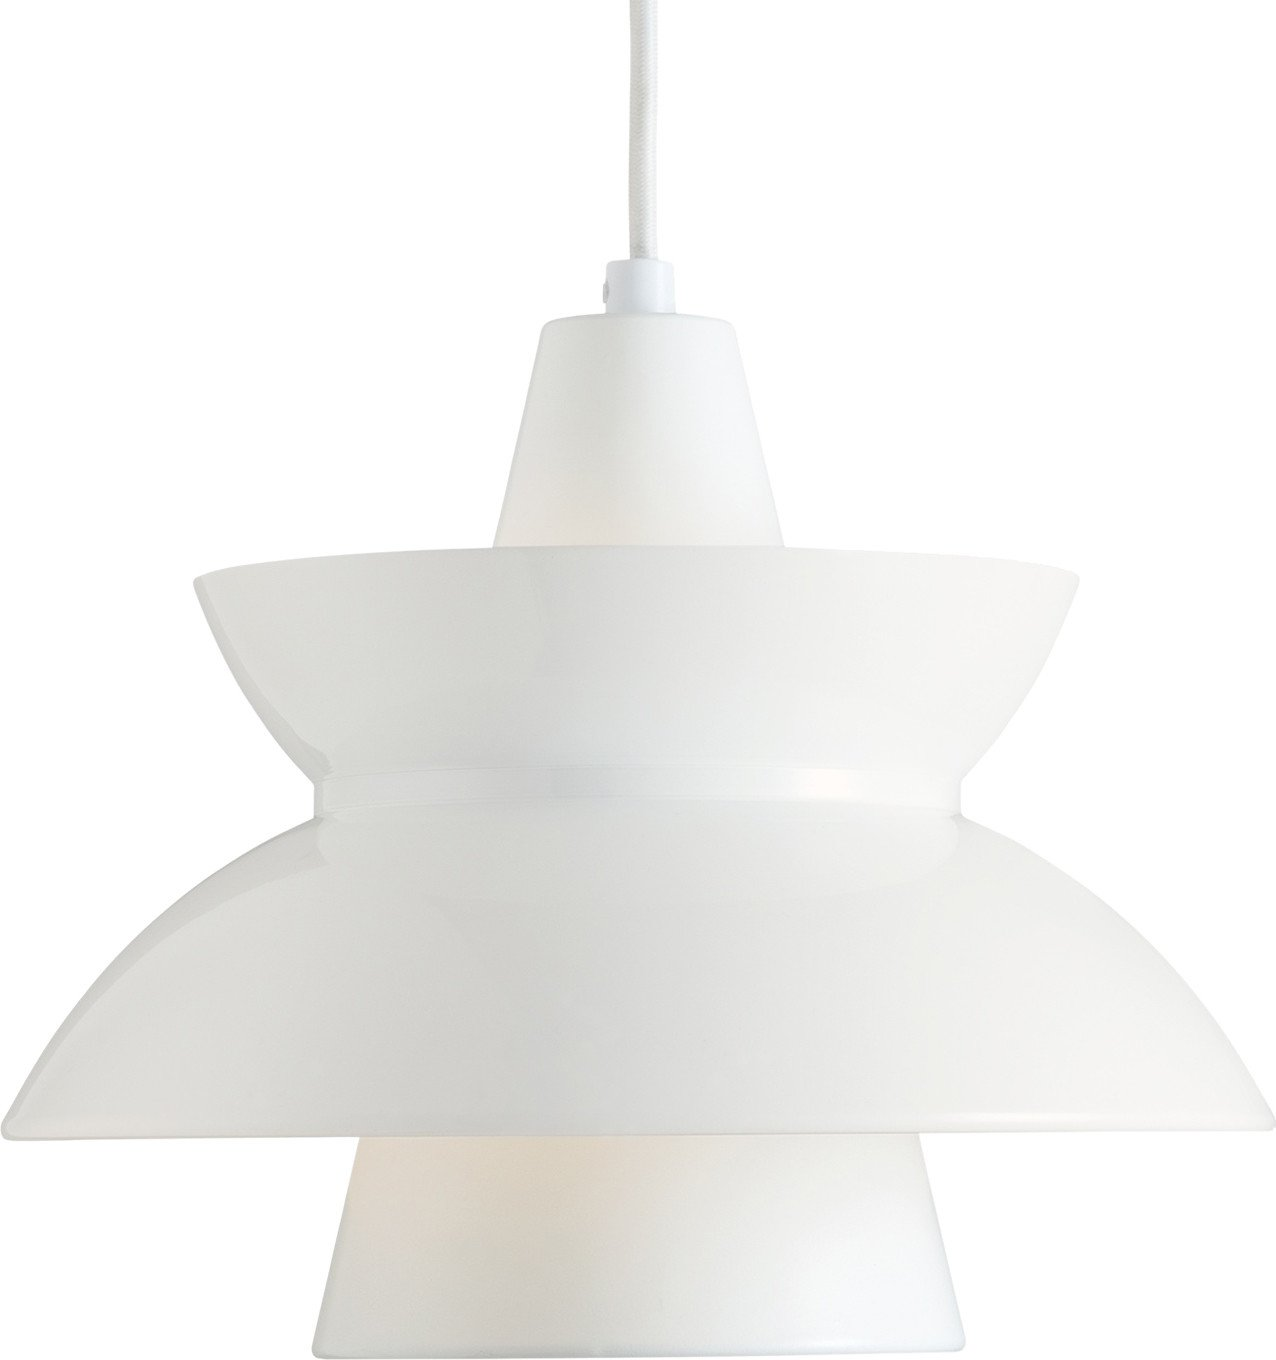 Doo-Wop Pendant Lamp White by A. &. Navy Buildings Department for Louis Poulsen